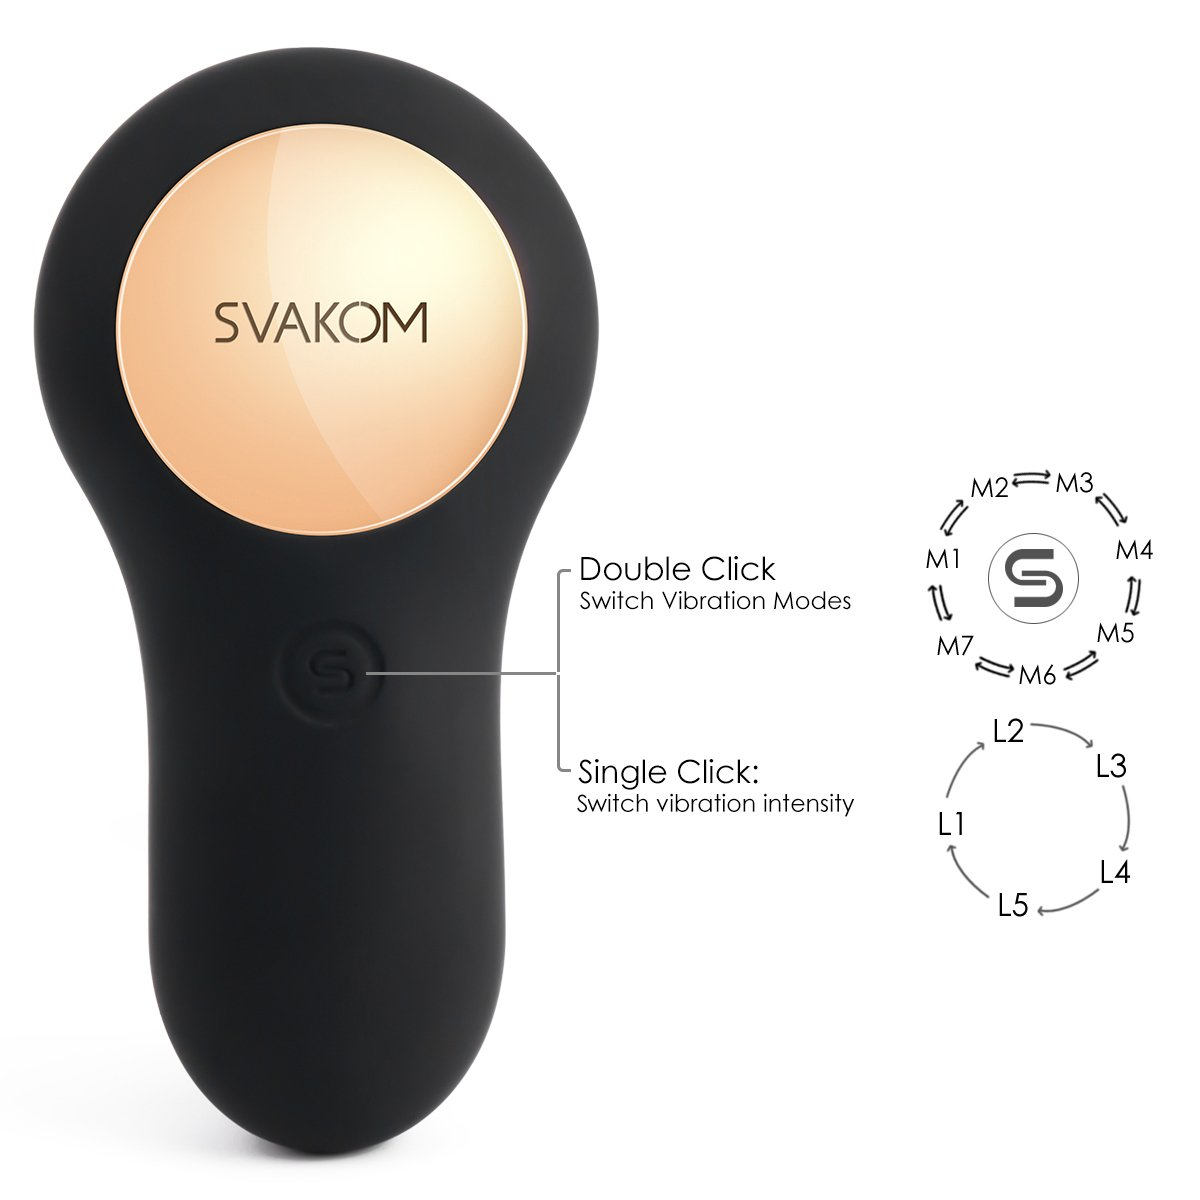 SVAKOM Vicky Sex Toy Male Anal Plug for men and G-Spot & Clitoris Vibrator Waterproof Rechargeable for Women